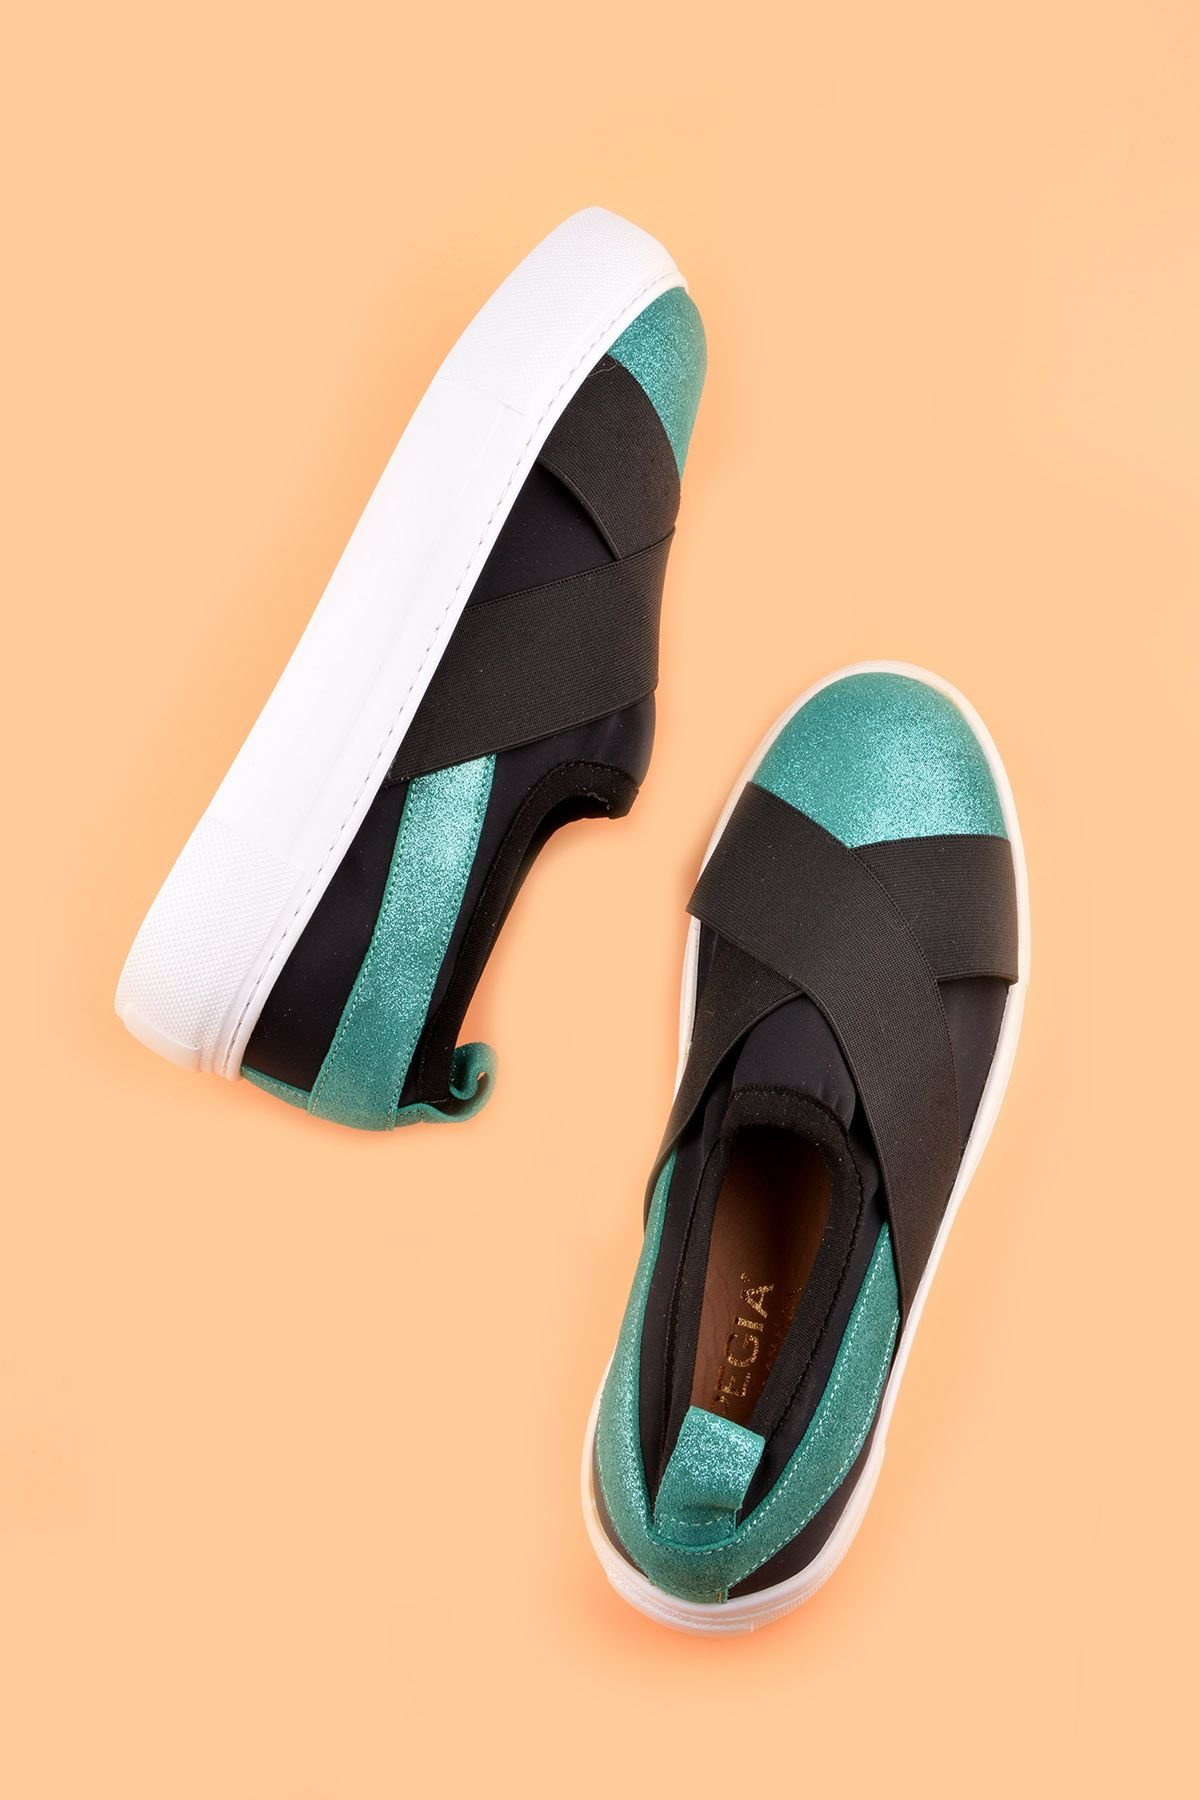 Pegia Voyage Casual Shoes From Genuine Leather REC-011 Green